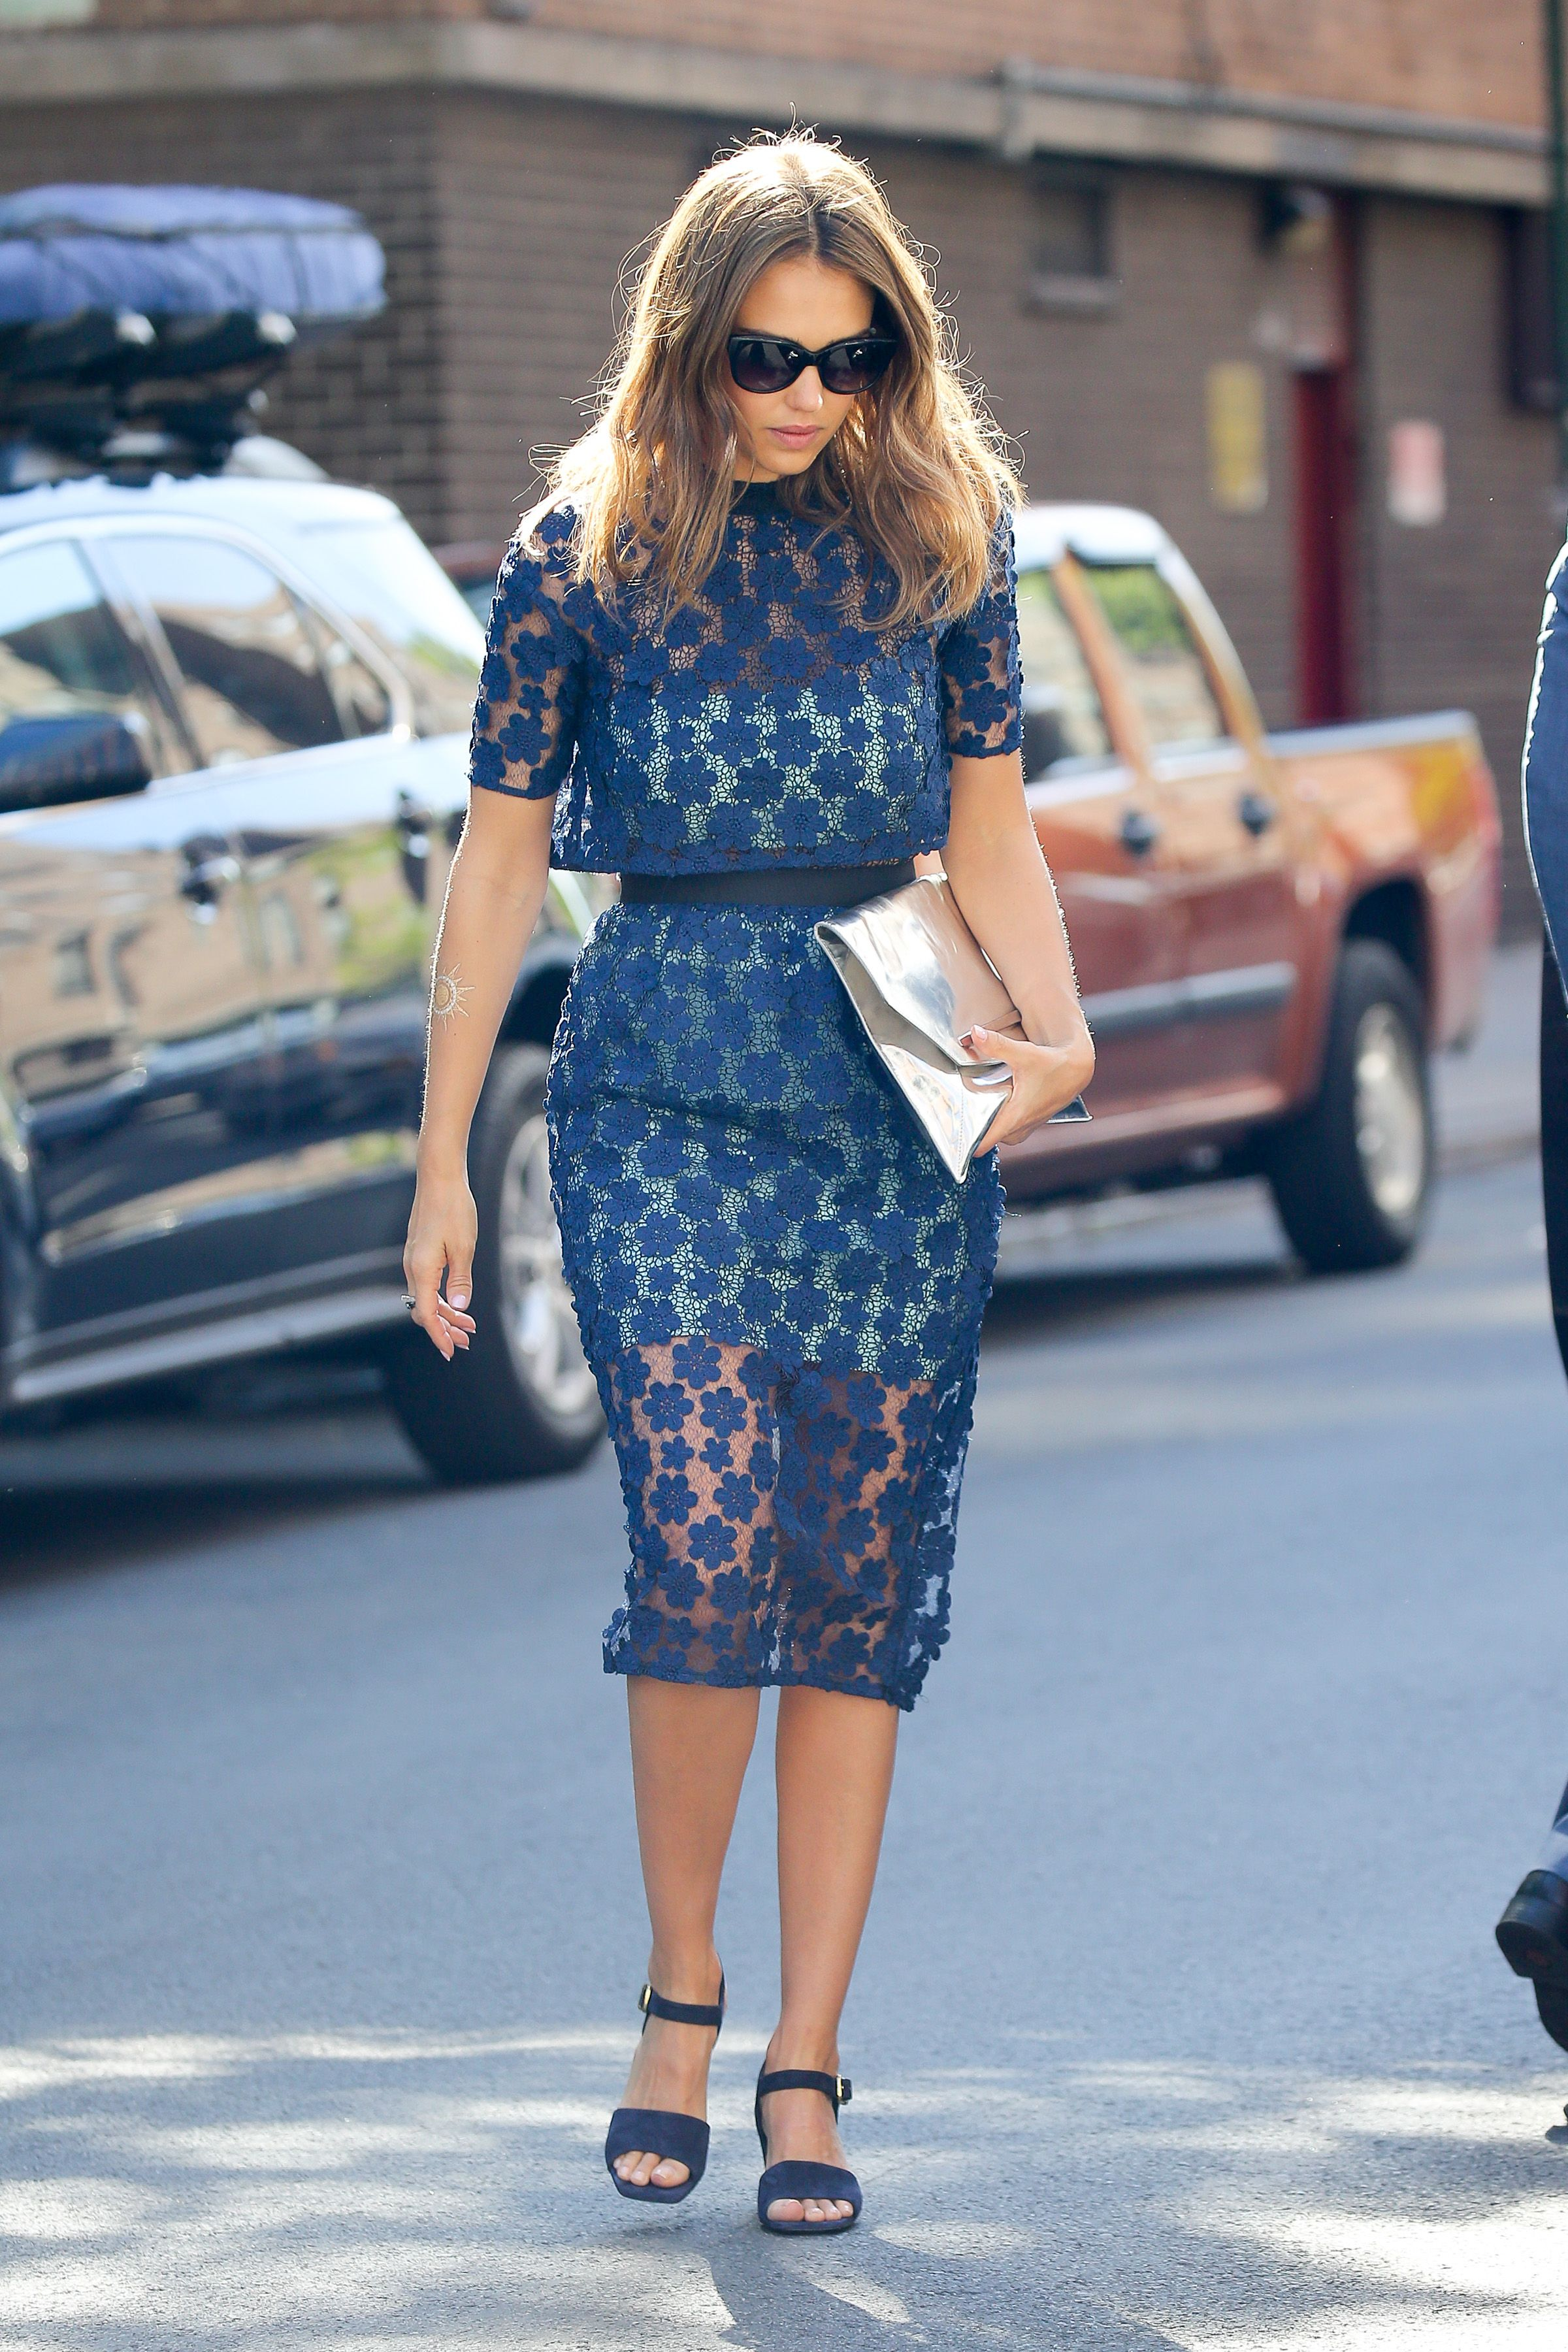 Jessica Alba out in NYC 6/15/16